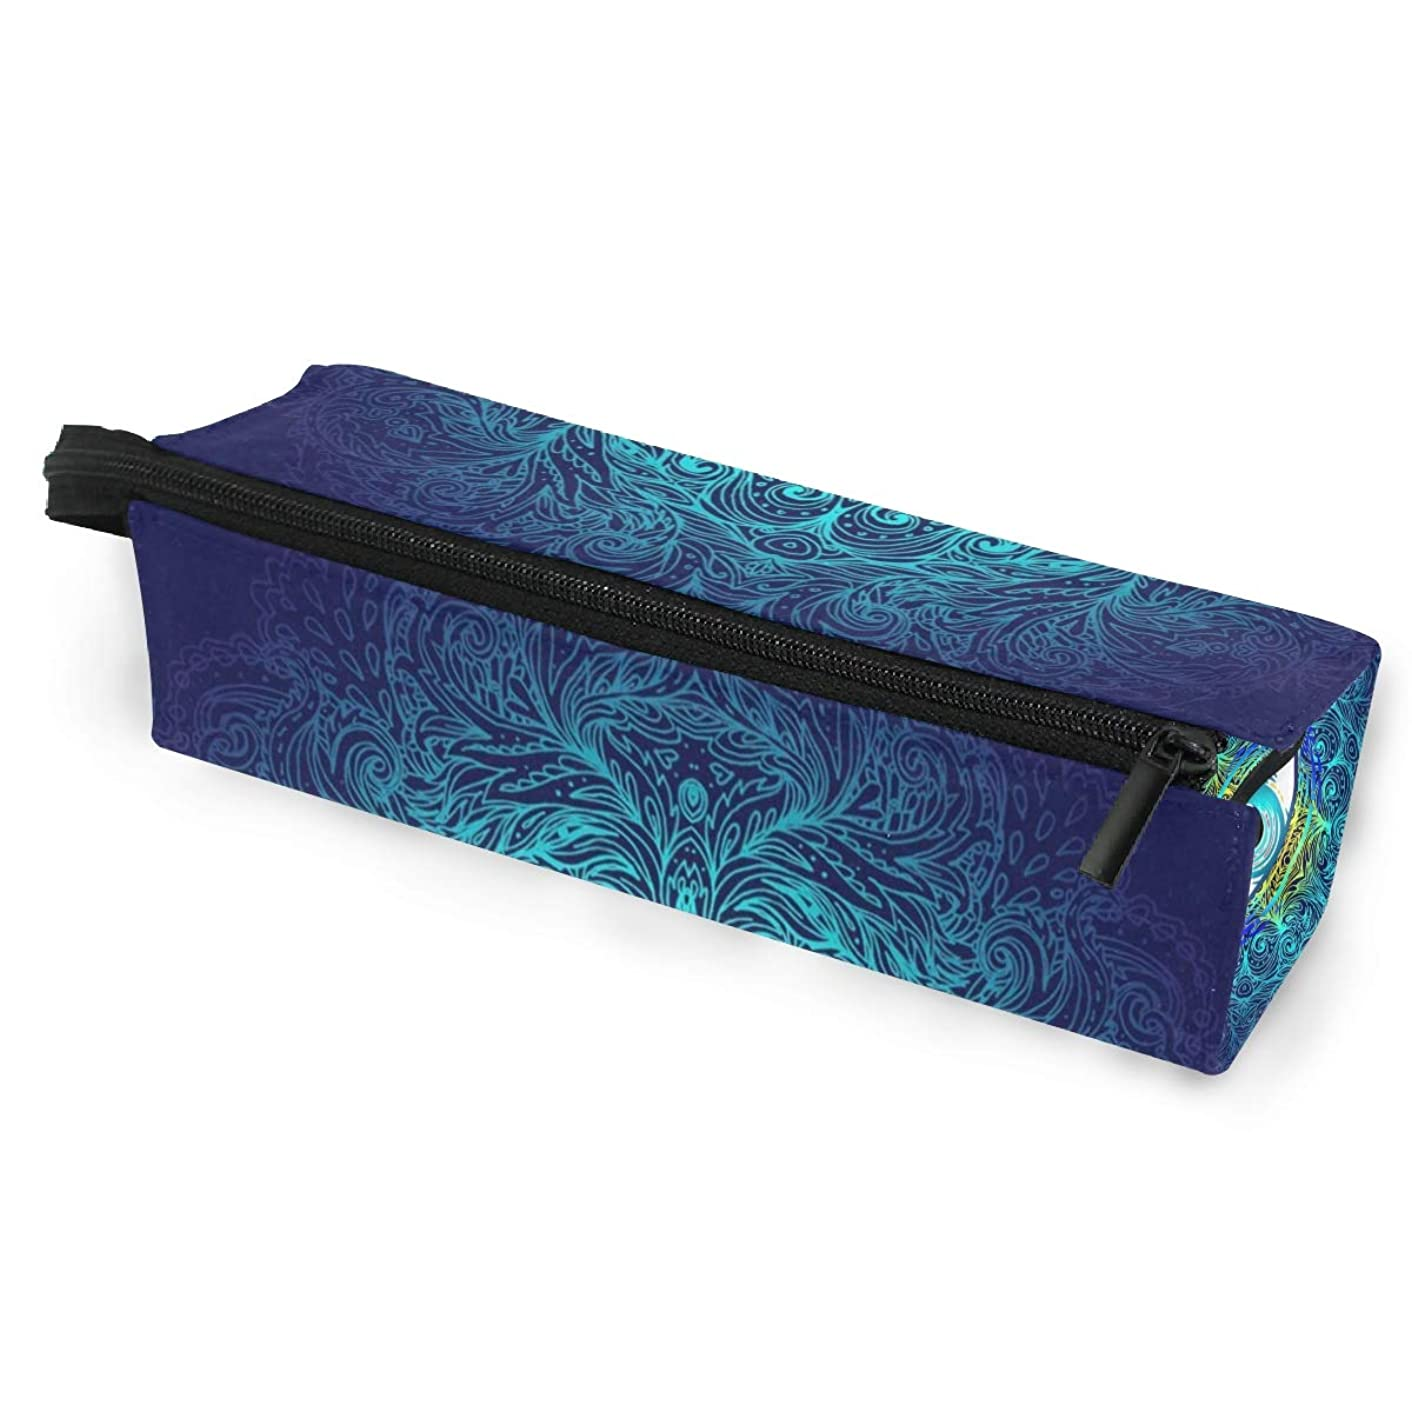 Glasses Case Sacred Geometry Eye Multi-Function Zippered Pencil Box Makeup Cosmetic Bag for Women